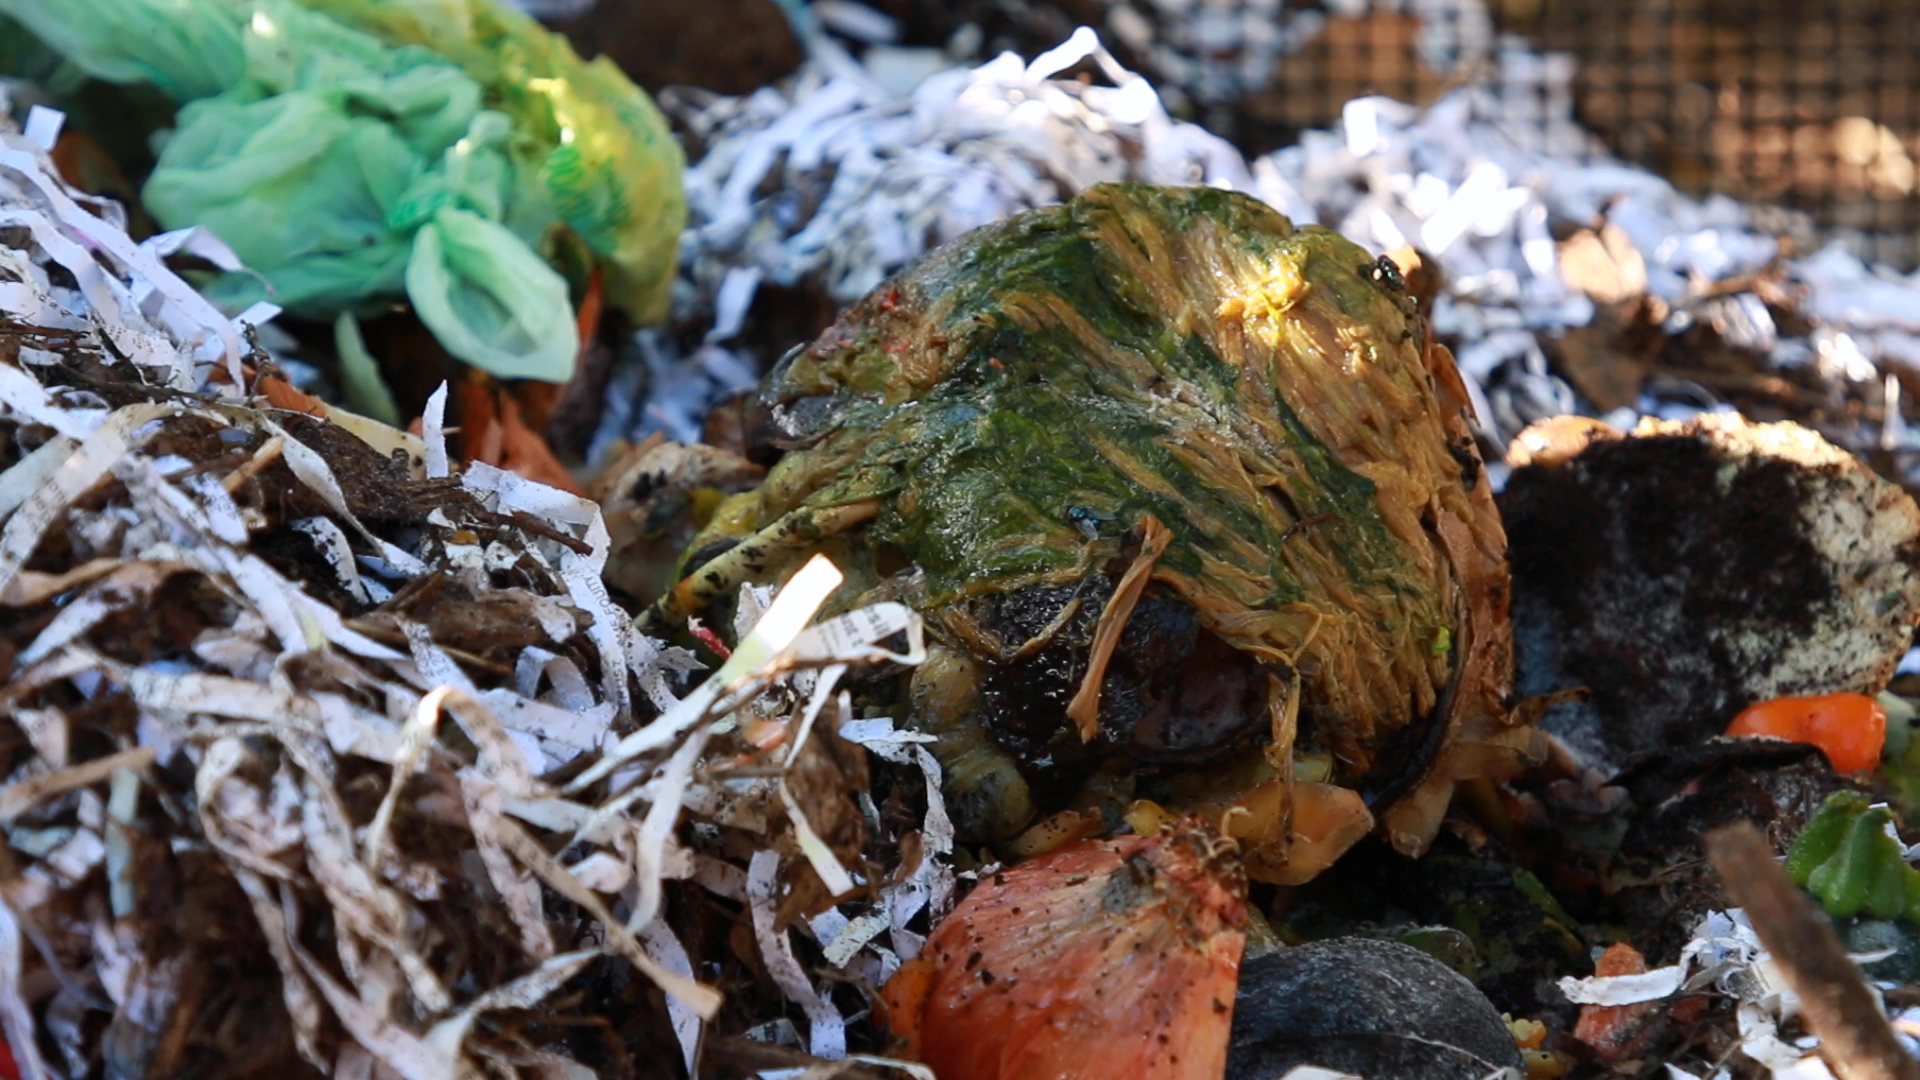 Food waste that was diverted from landfills to fight soil degradation. Photo by: Justin Dalaba